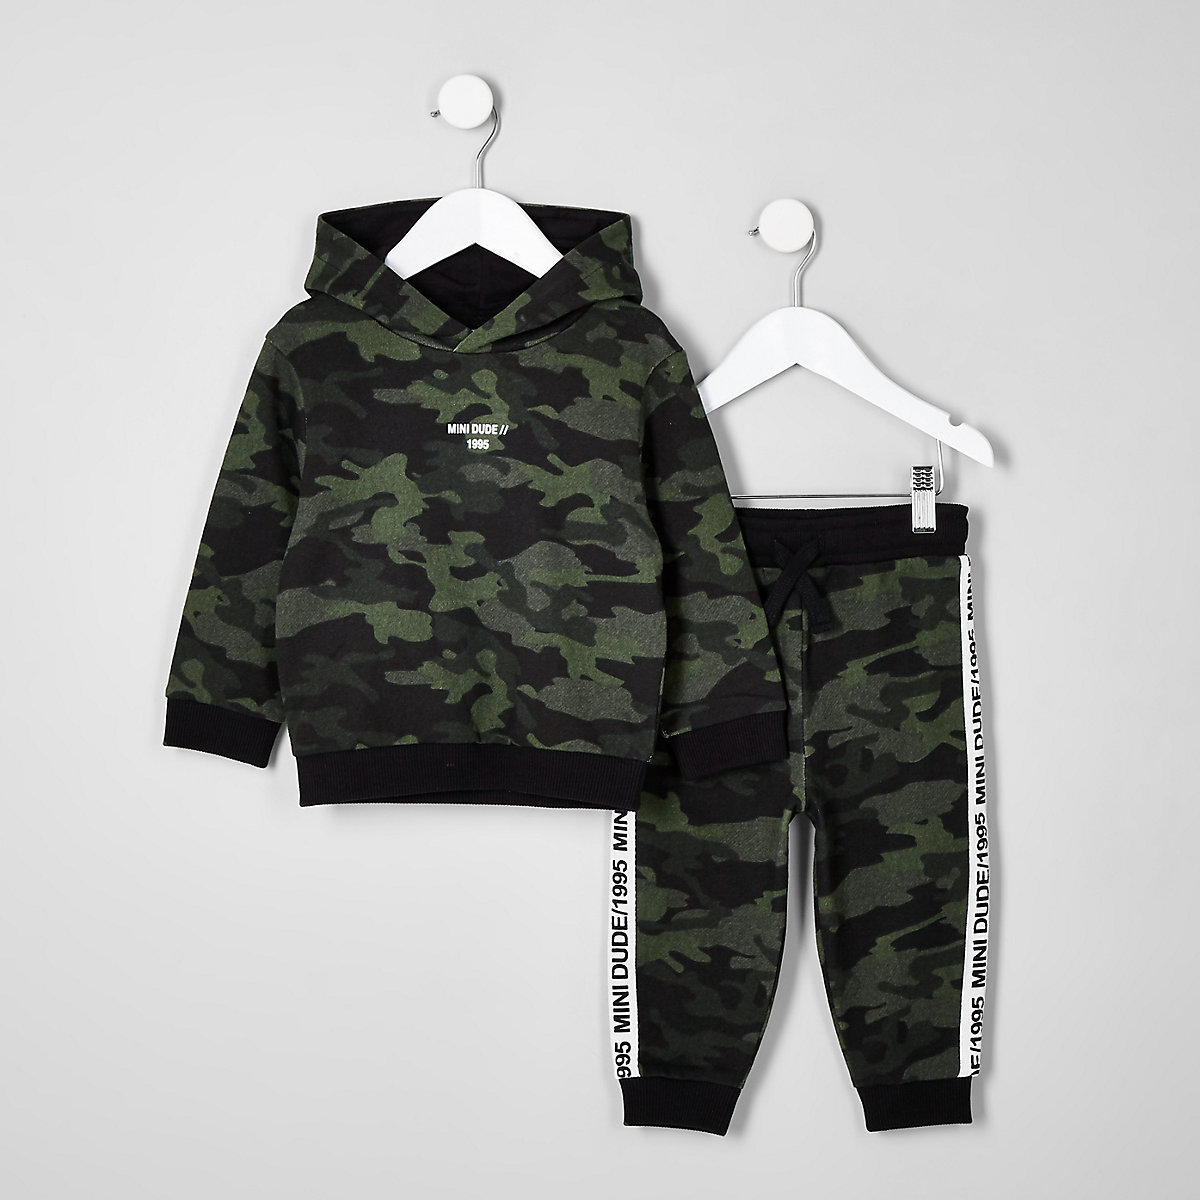 Mini boys khaki camo taped hoodie outfit